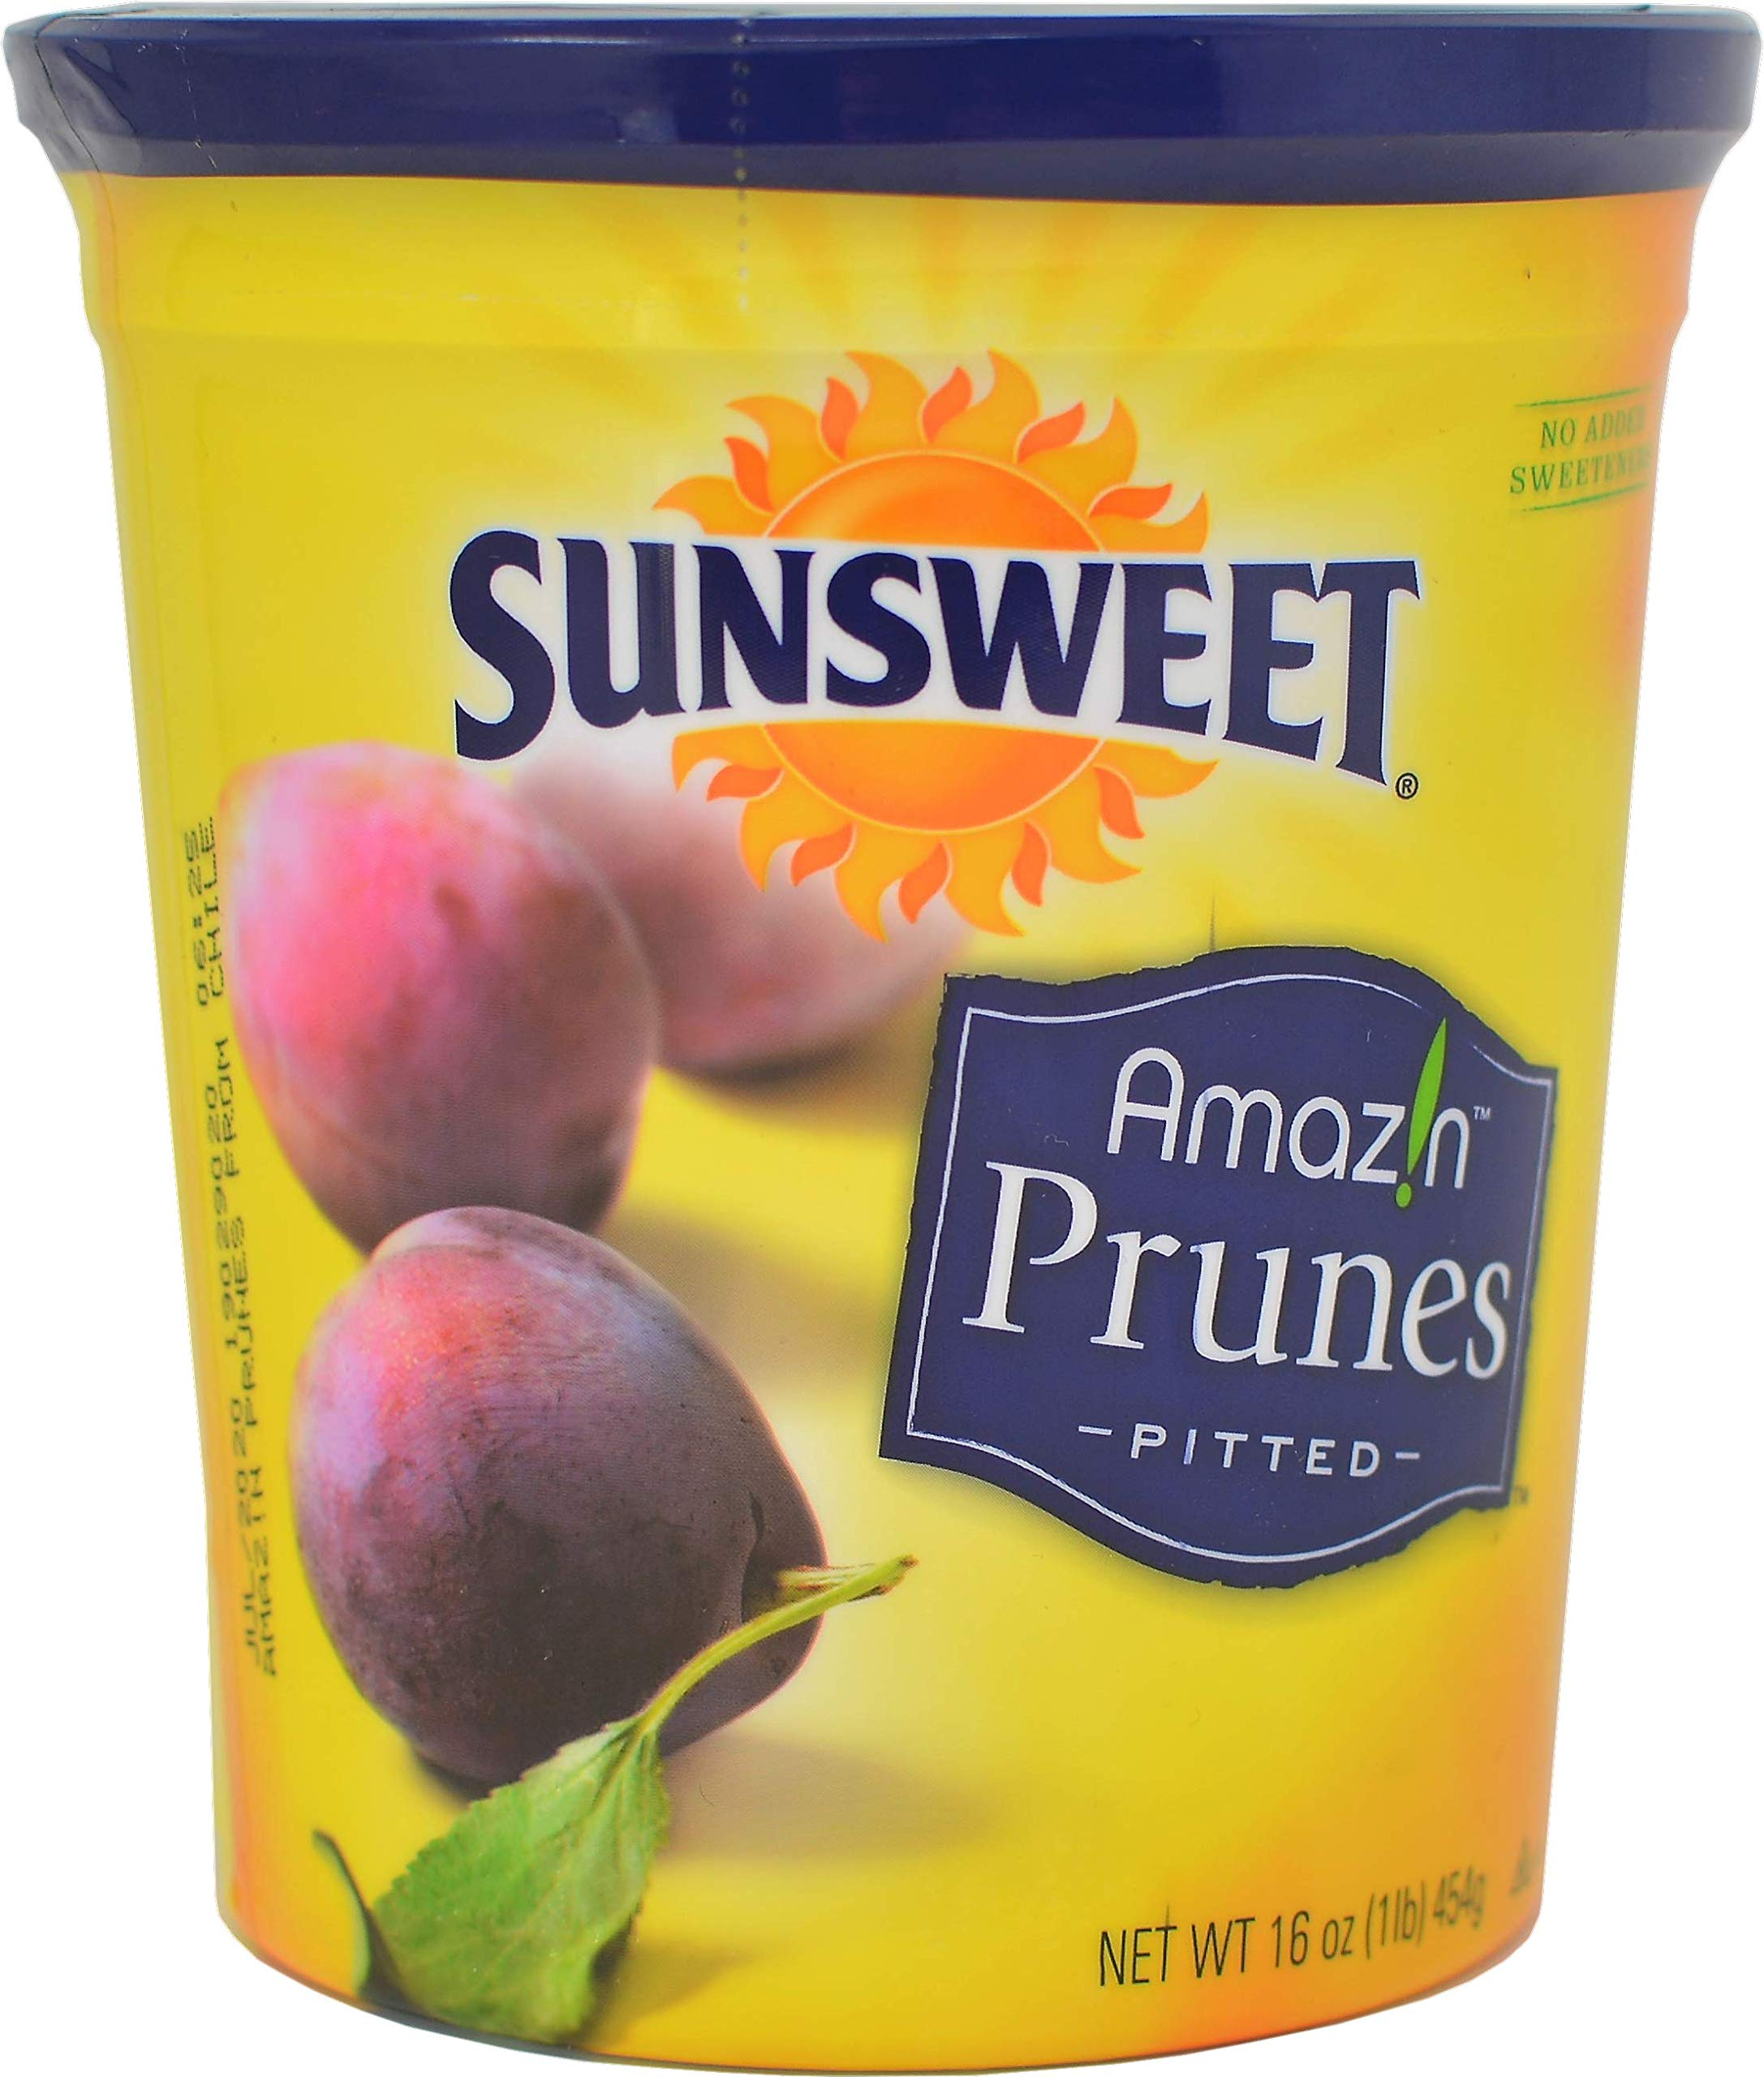 SUNSWEET Amazin Pitted Prunes, 16 oz by Sunsweet